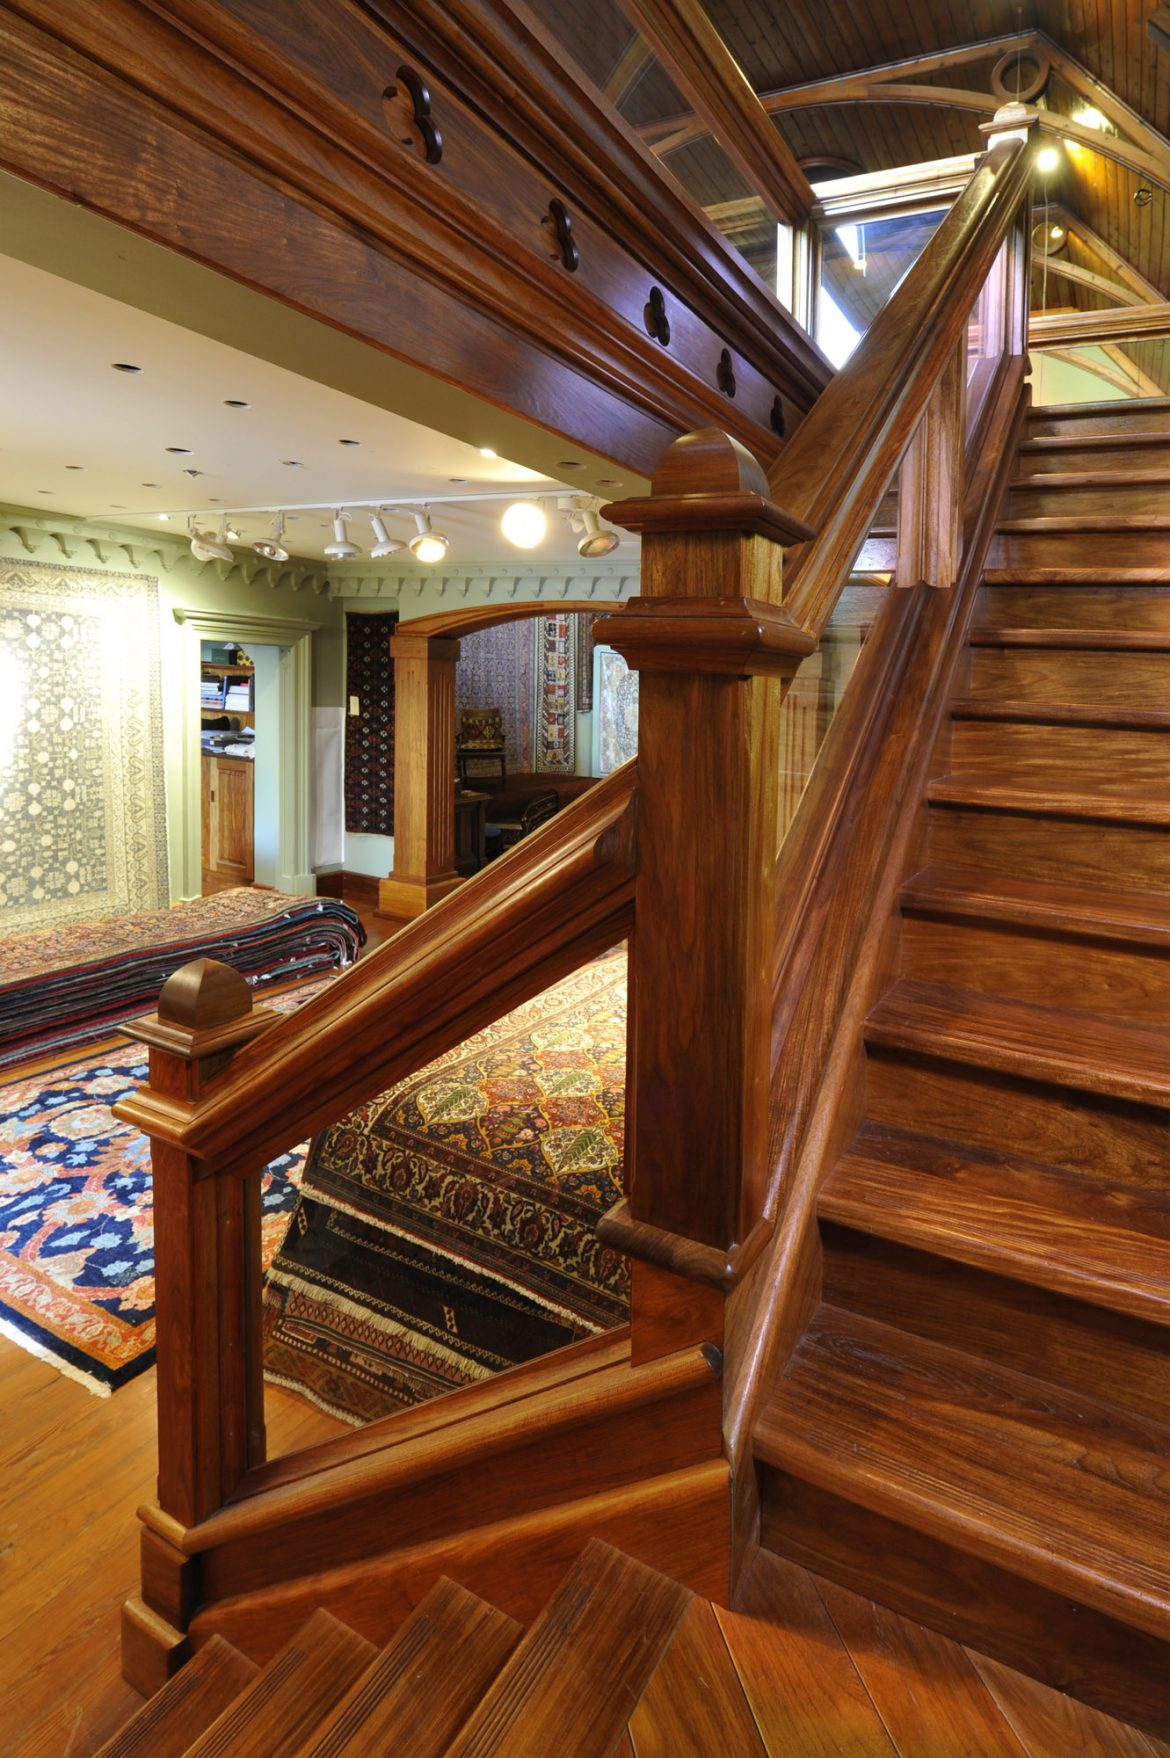 Shiraz Gallery Stairs Architectural Joinery